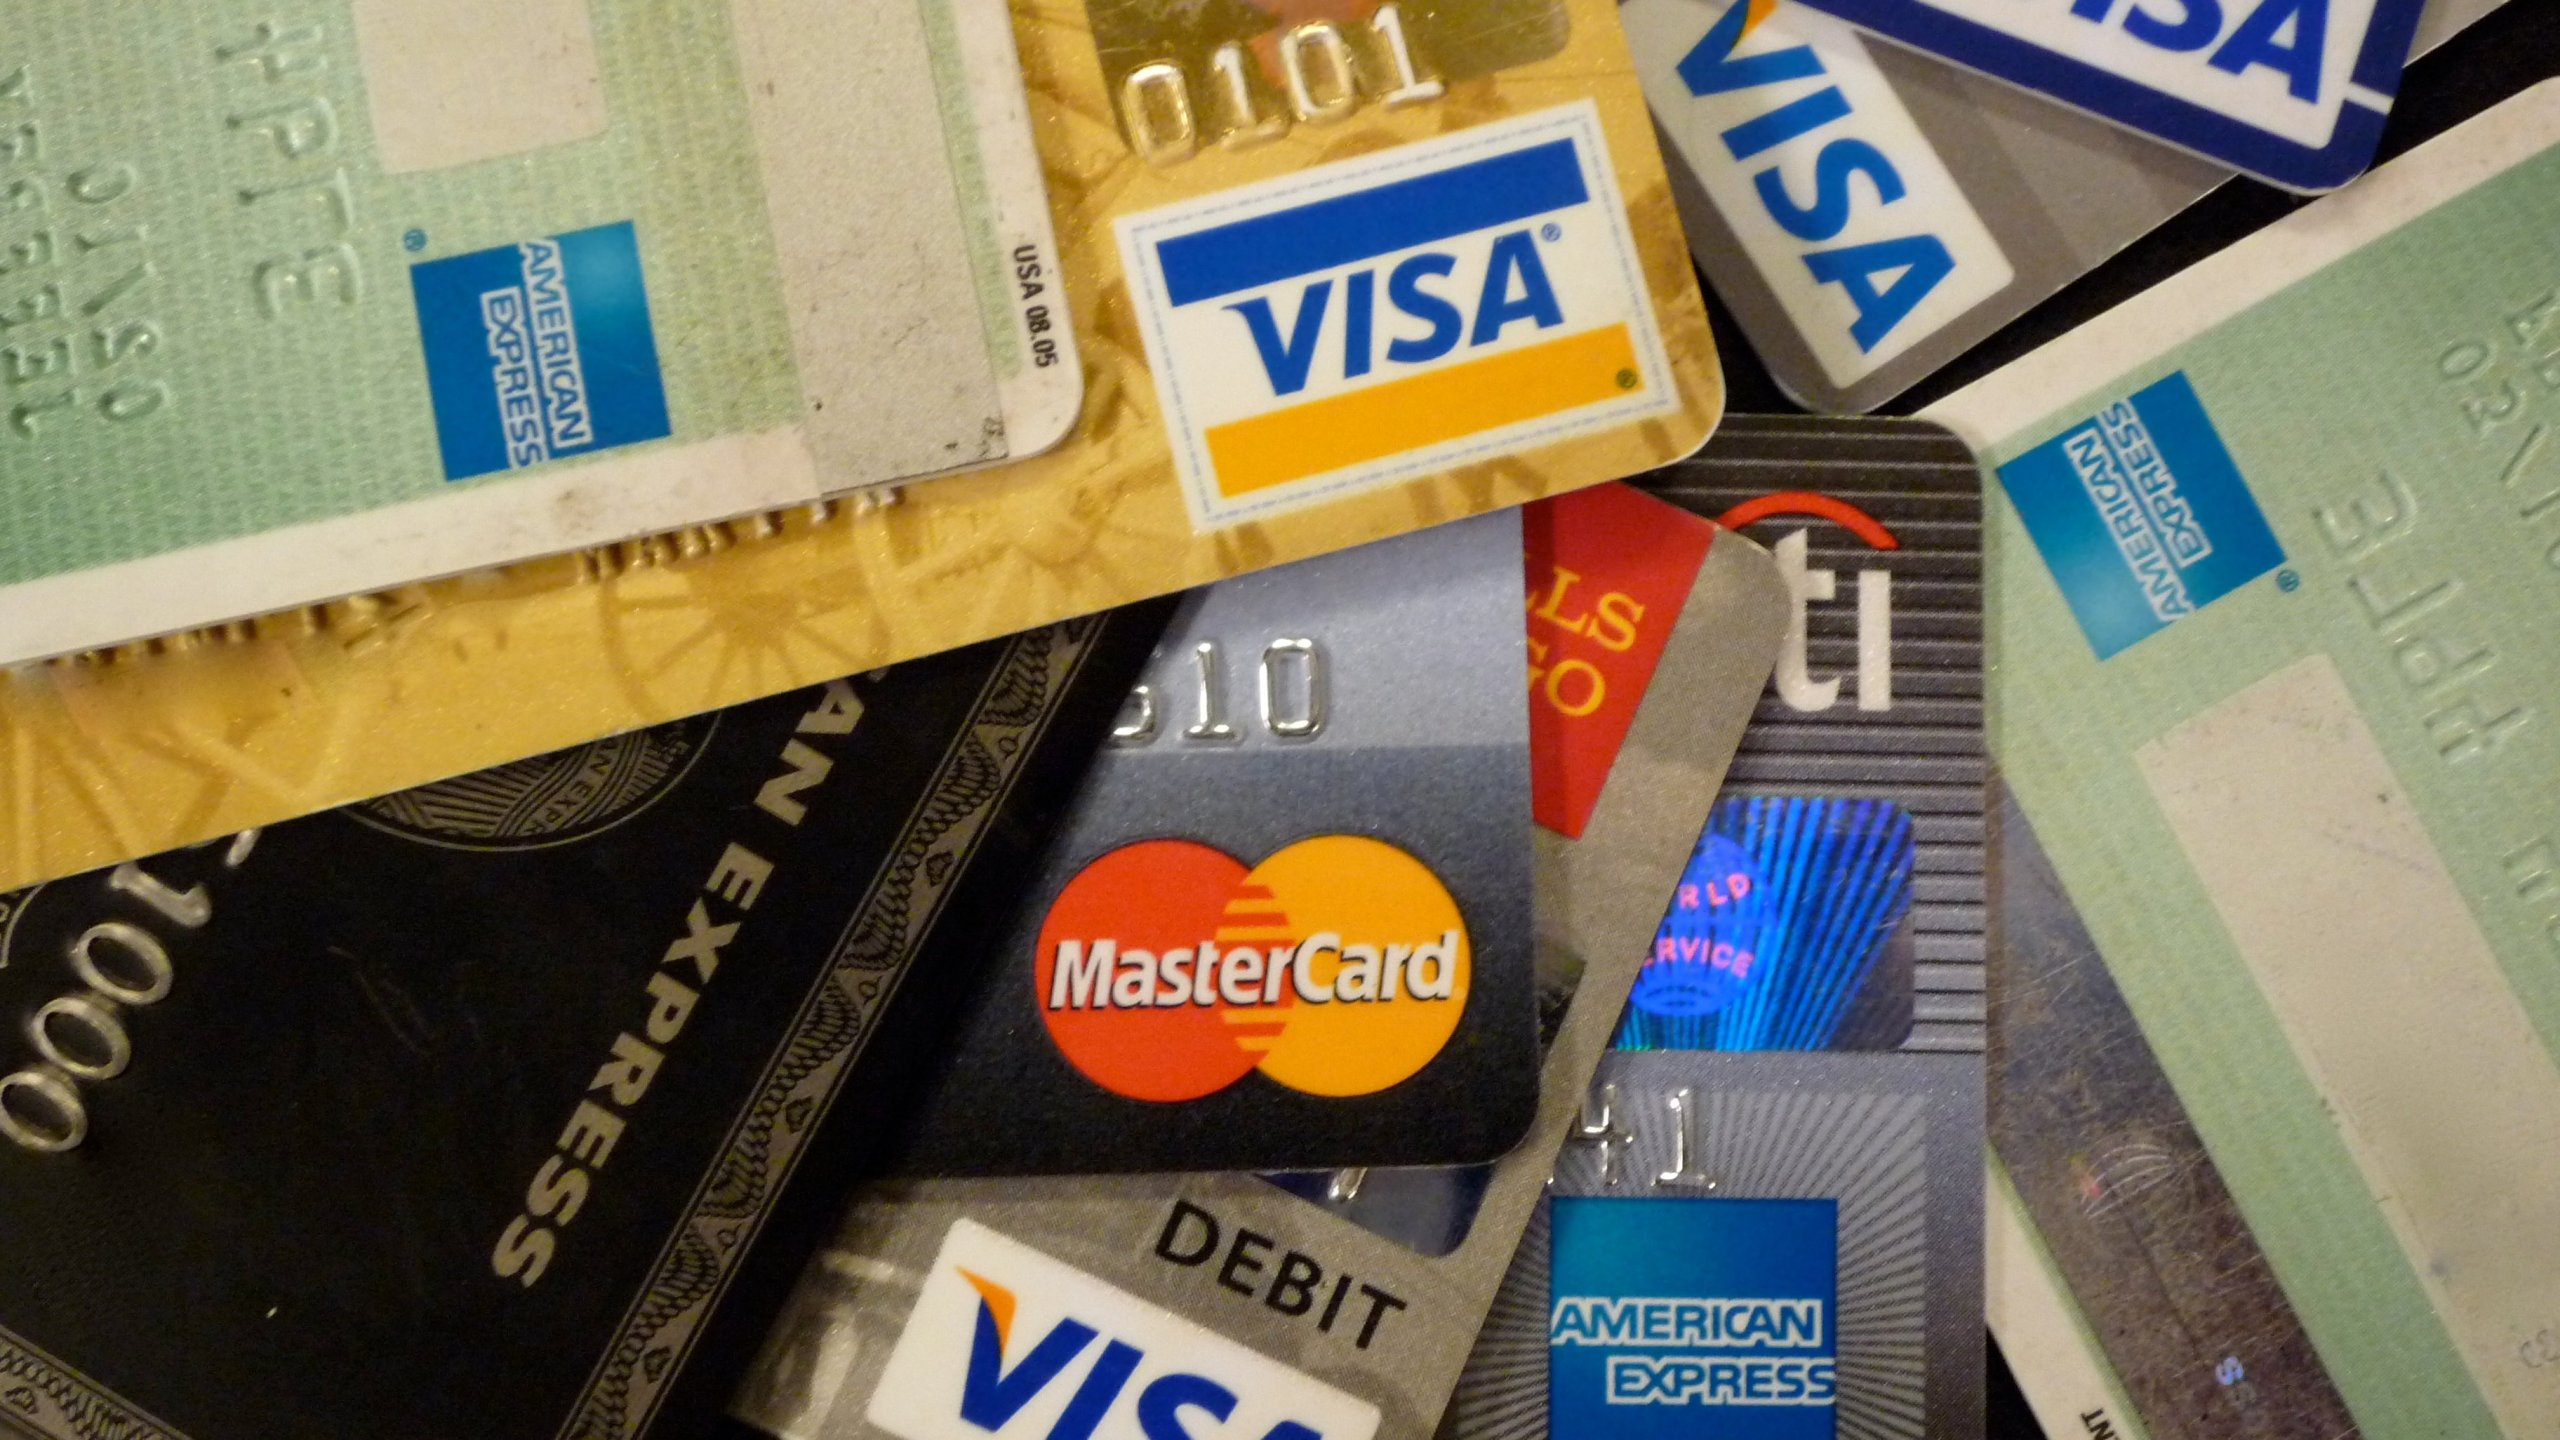 [FILE] A stock photo of VISA, American Express and MasterCard credit cards.